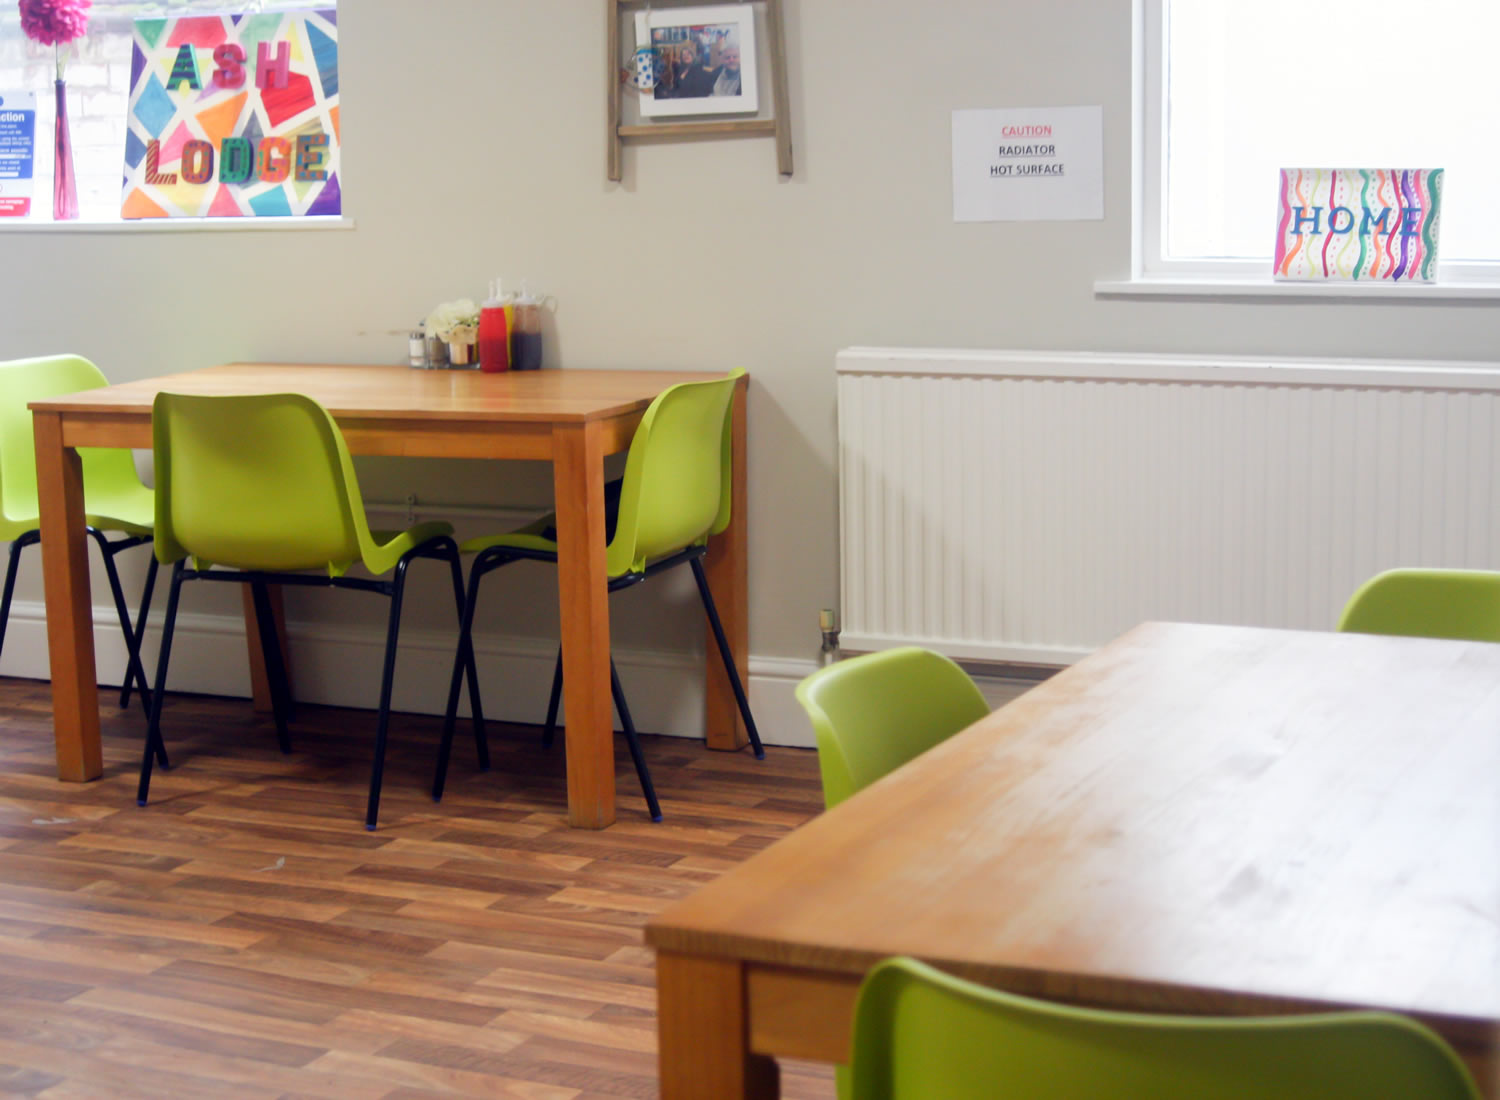 Ash Lodge Care Home in Hull 2